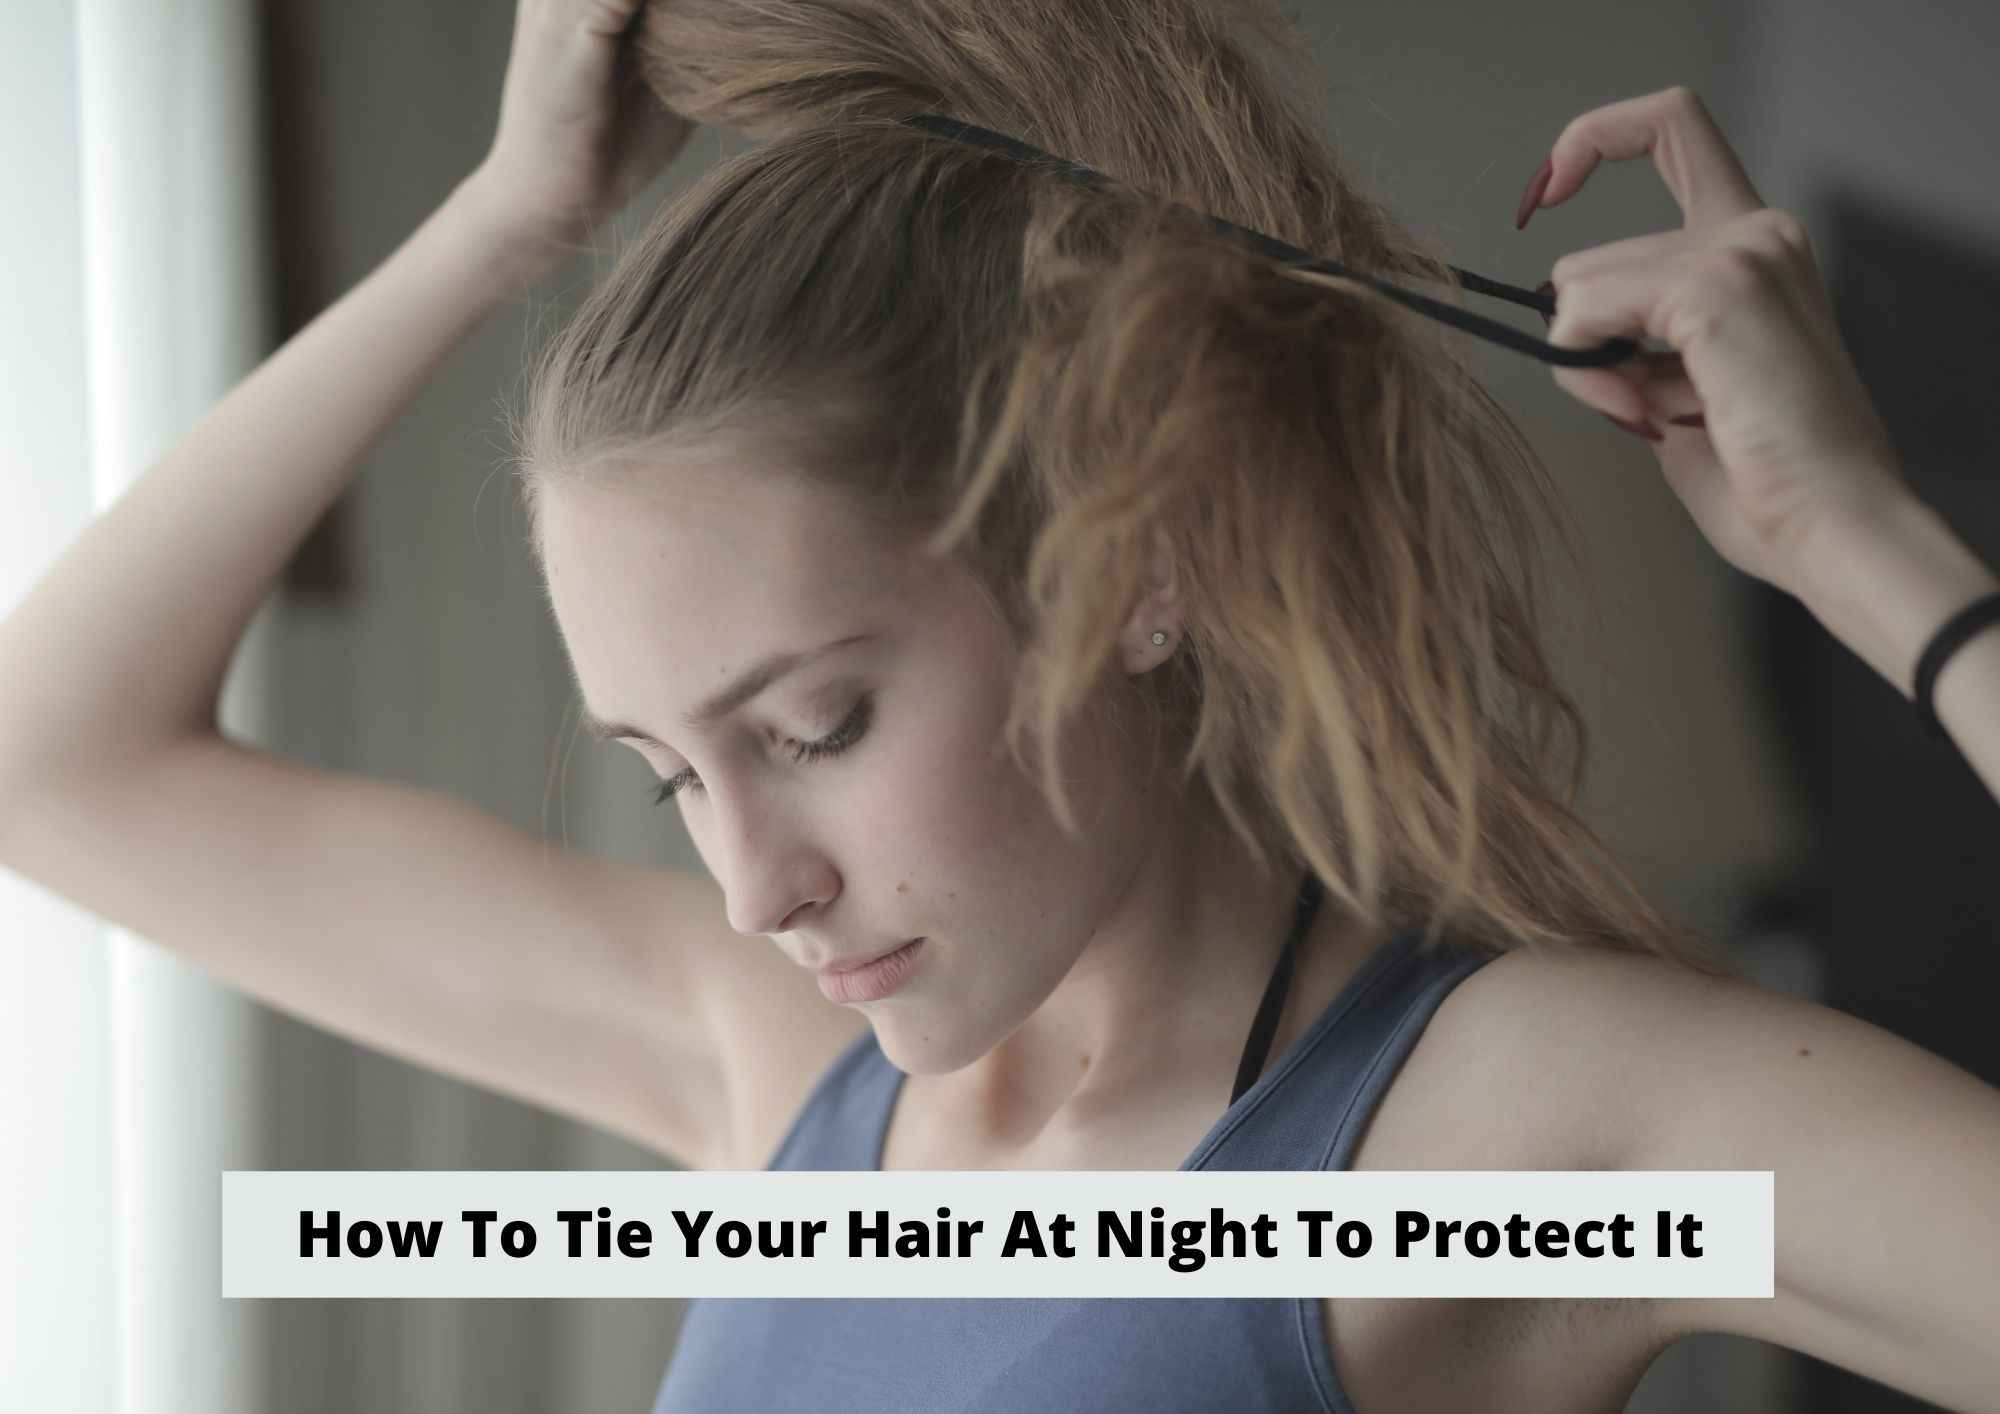 How To Tie Your Hair At Night To Protect It